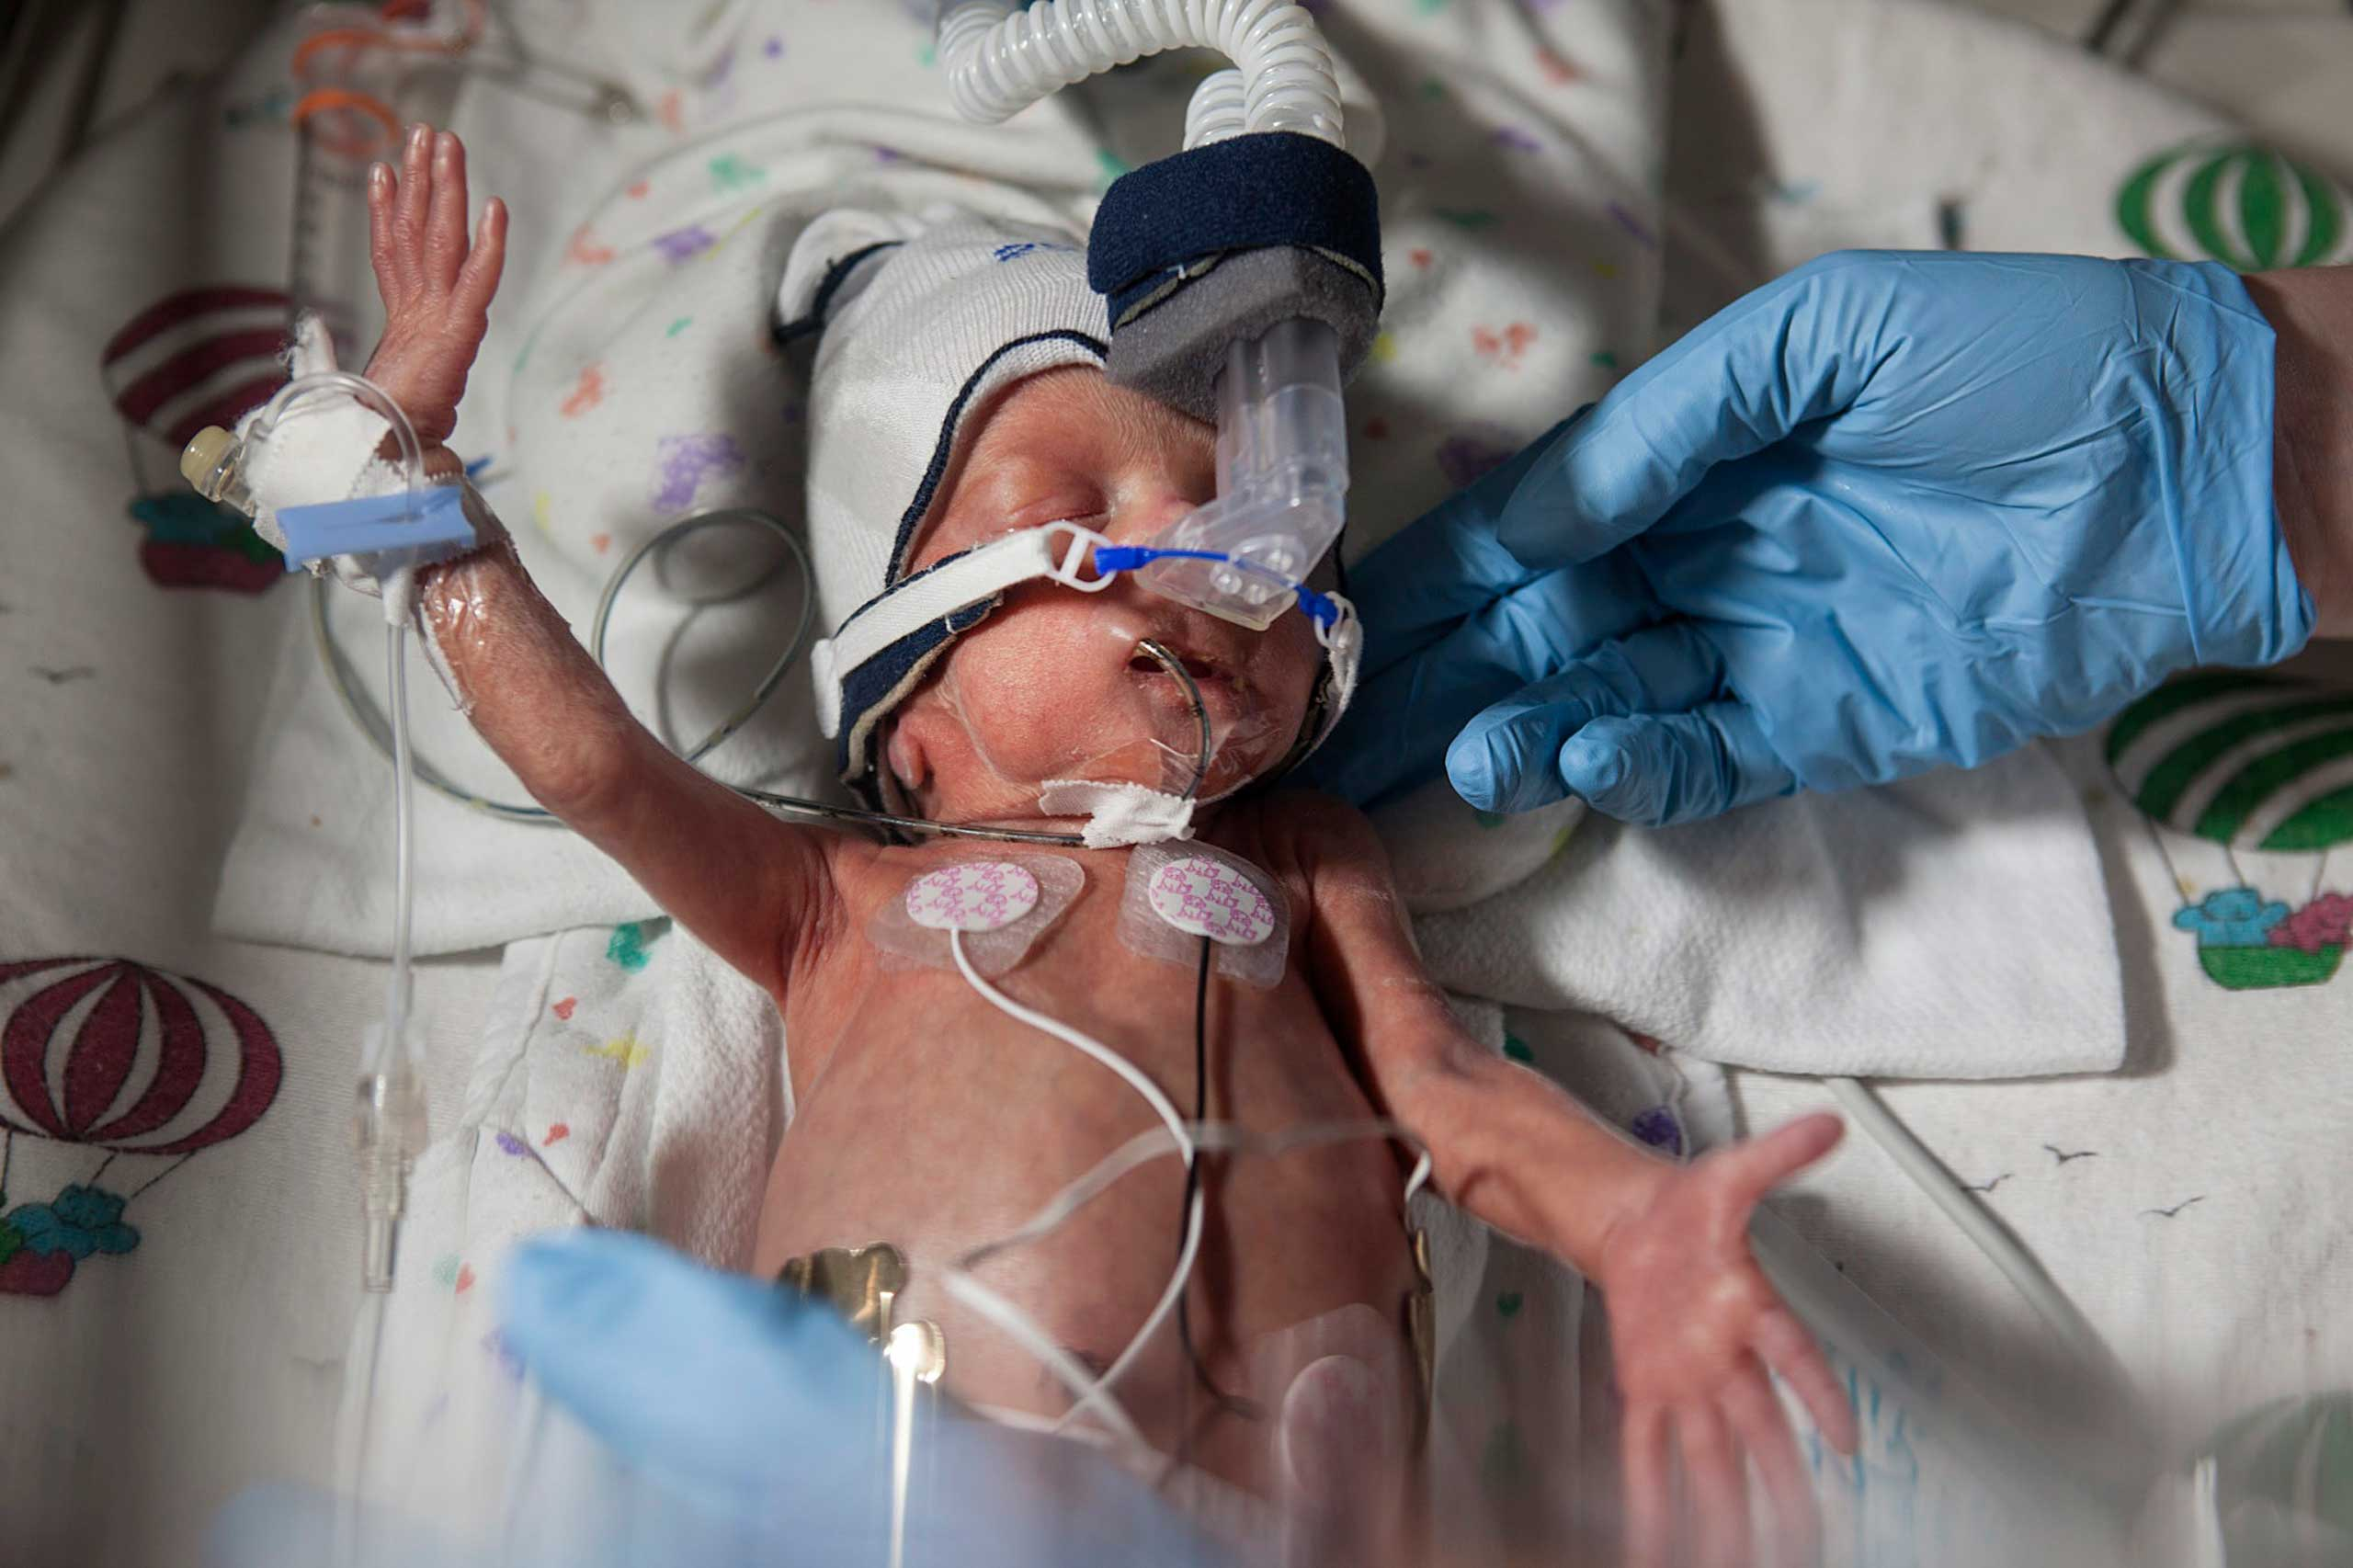 The following images were taken by Elinor Carruci in February 2014.                                David, an infant born at 28 weeks gestation, is seen in an incubator at the Children's Hospital of Wisconsin.